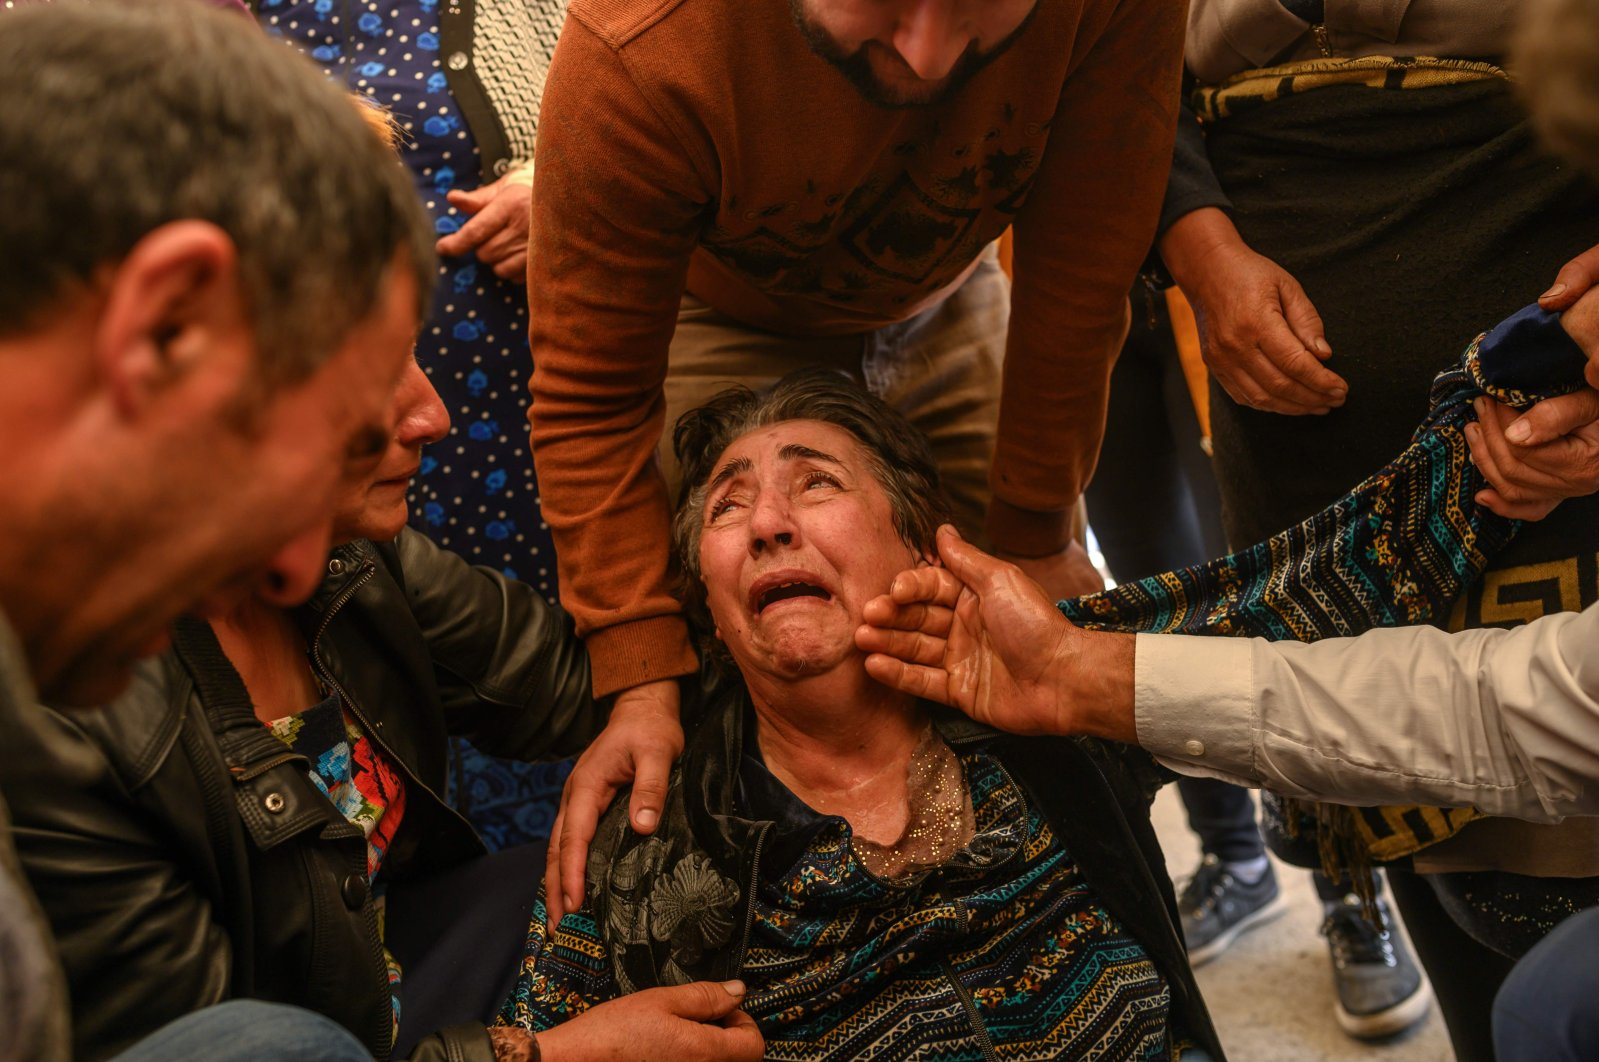 Relatives of Royal Sahnazarov, his wife Zuleyha Sahnazarova and their daughter Medine Sahnazorava, who were killed when an Armenian rocket hit their home, mourn during their funeral in the city of Ganja, Azerbaijan, on October 17, 2020 during fighting over the breakaway region of Nagorno-Karabakh. (AFP photo)